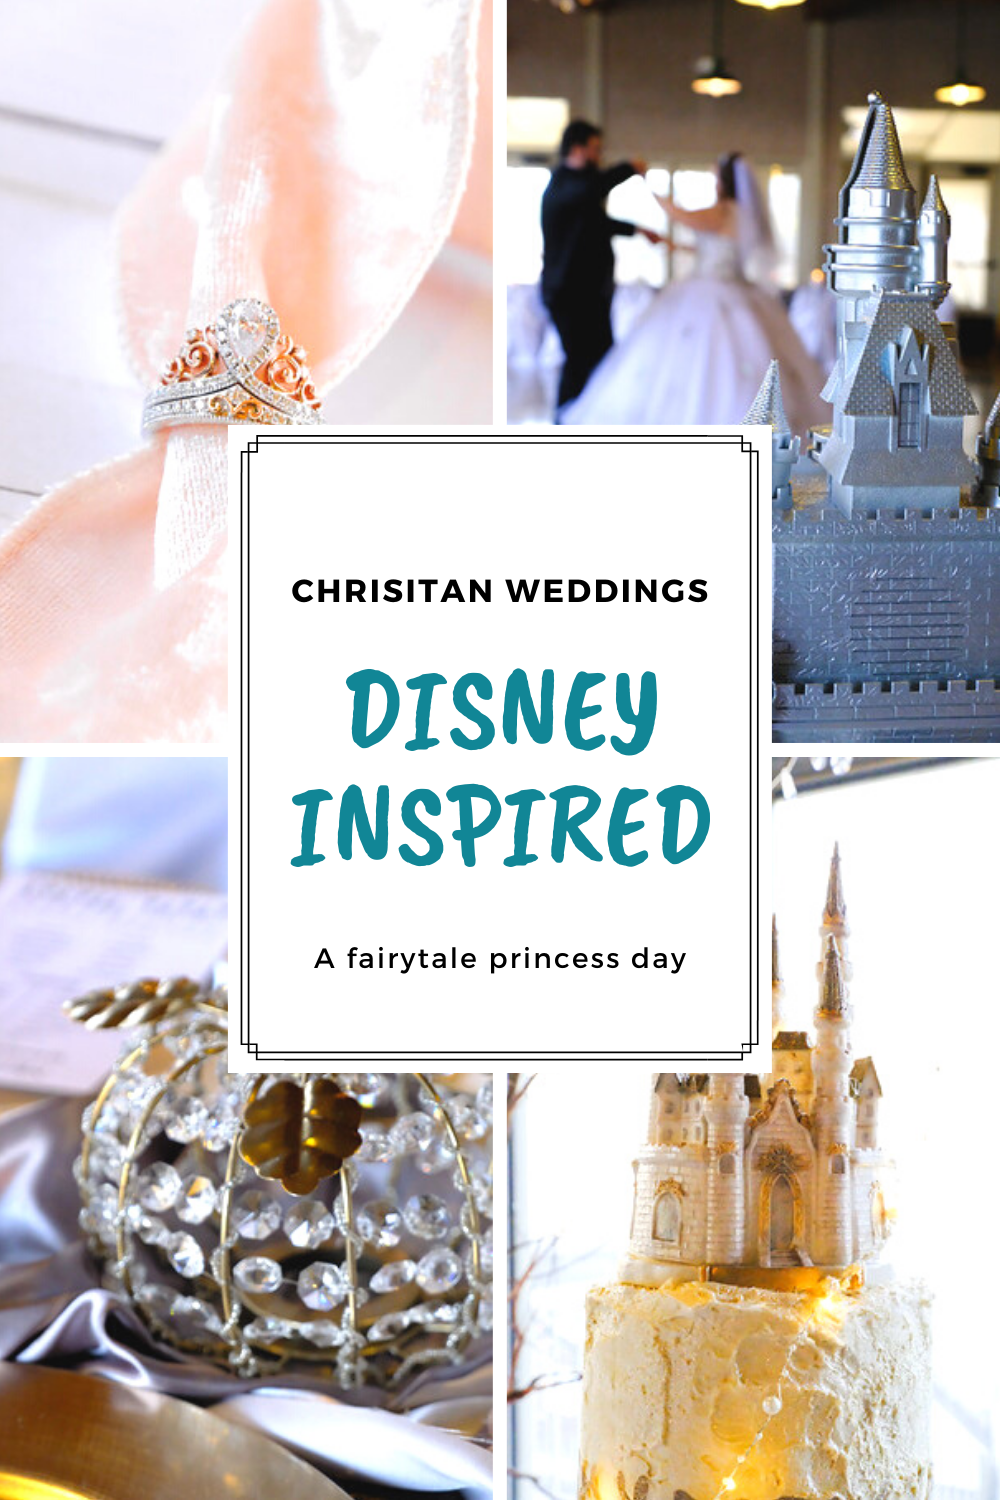 Christian wedding with Disney inspired  themed decor-forgethimknot.com